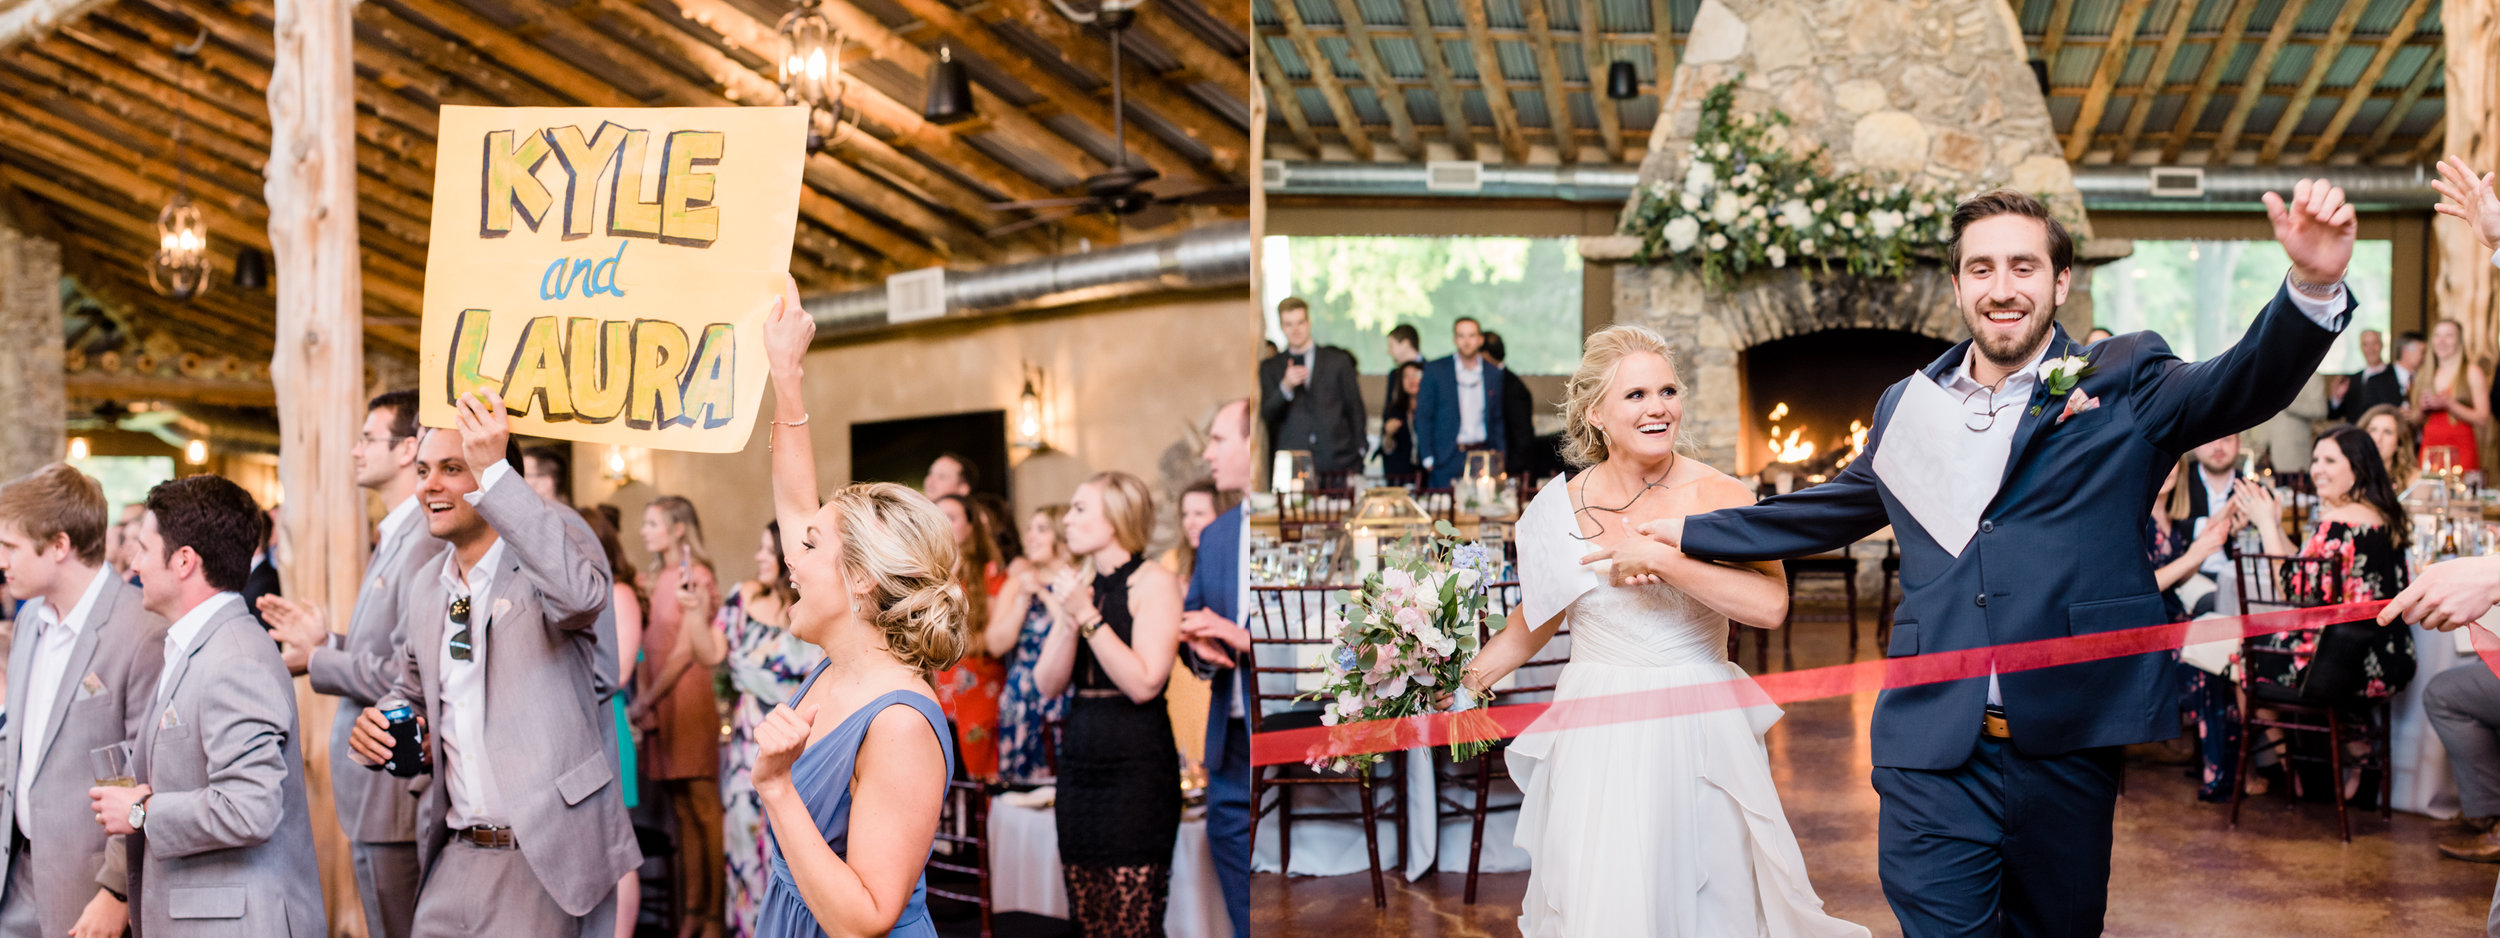 Laura & Kyle Preview-39.jpg